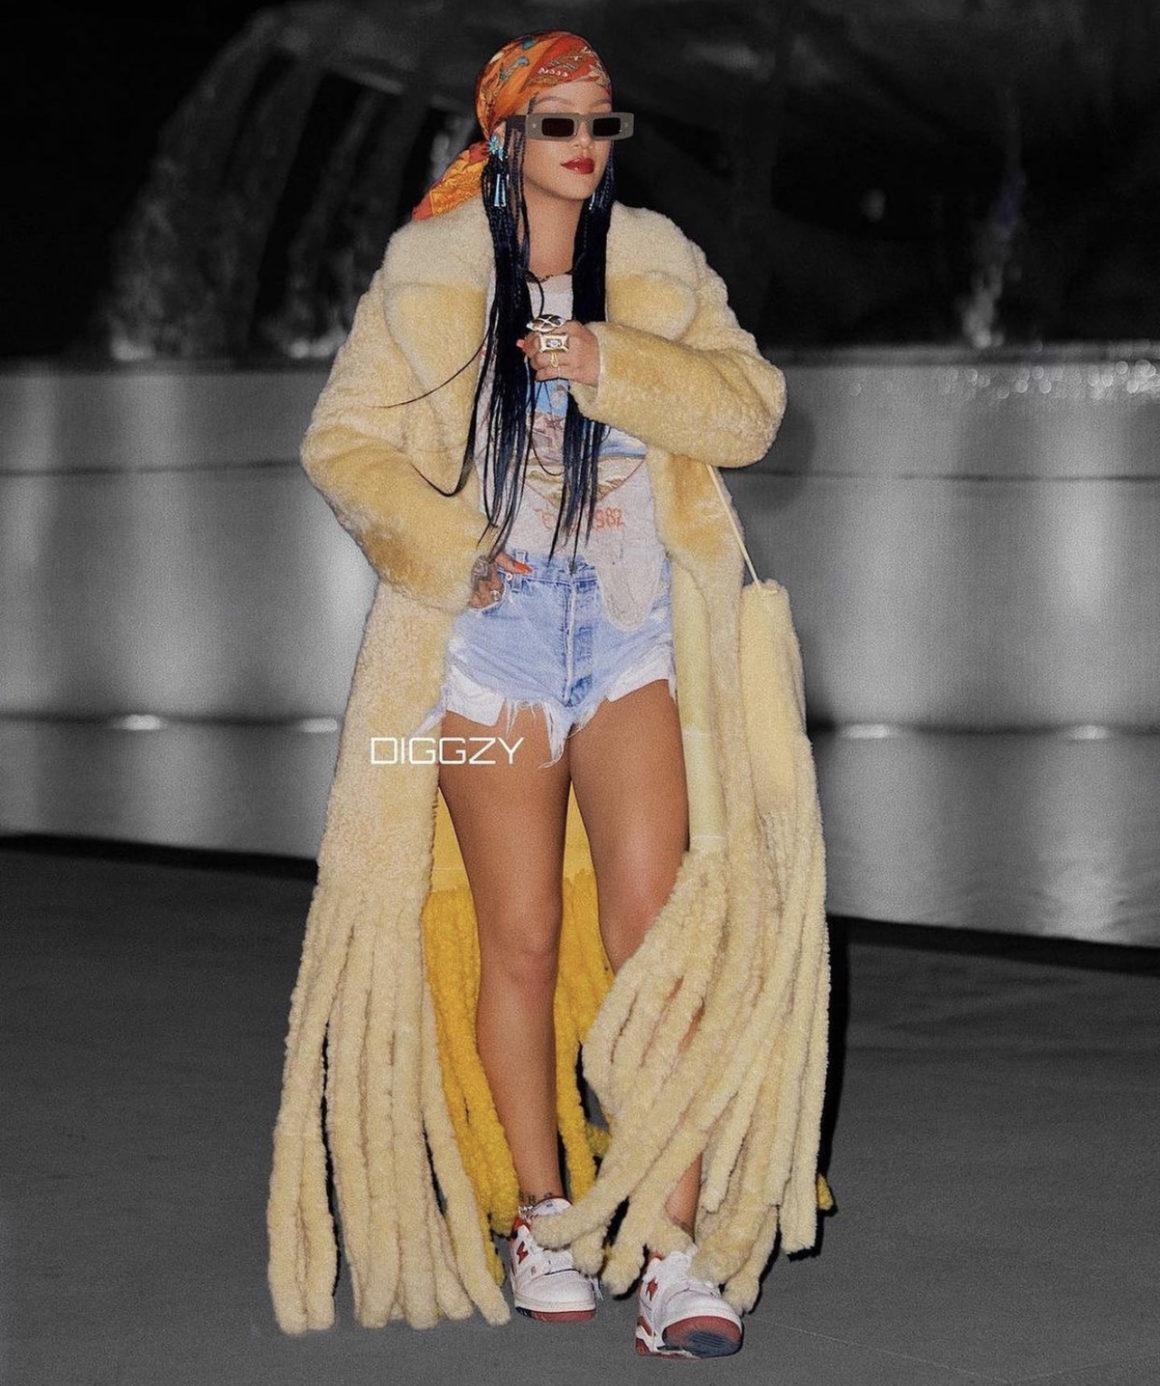 Rihanna Spied Looking for Locations in LA for Next Project Wearing Bottega Veneta Shearling Coat and Bag, Iron Maiden Graphic Tee, Denim Shorts, and Aimé Leon Dore x New Balance Sneakers